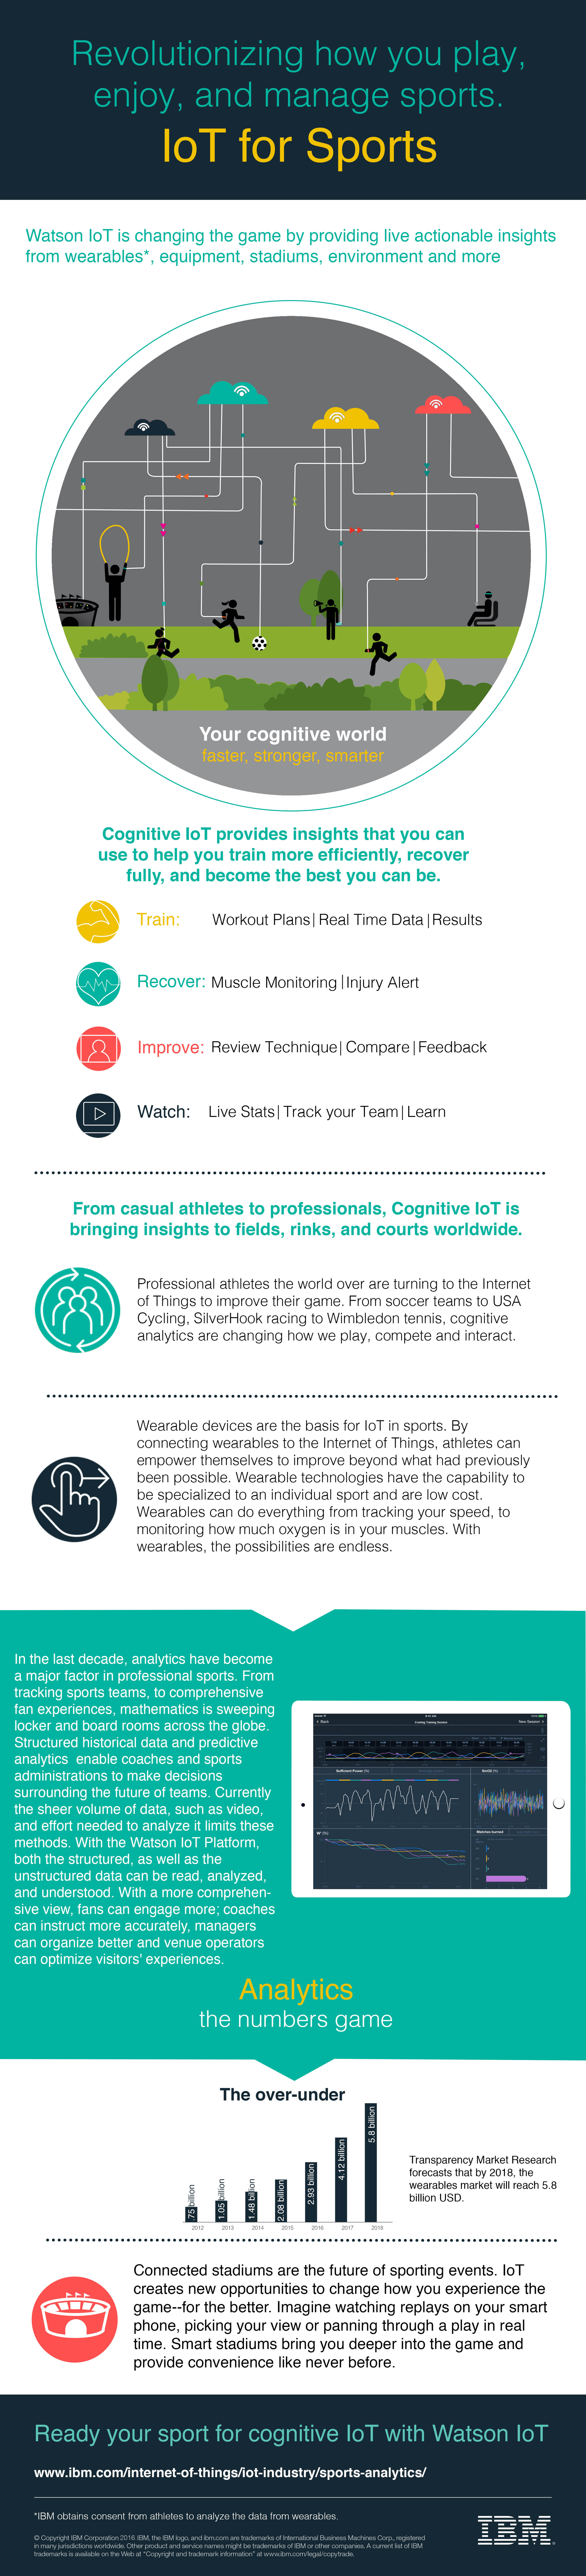 IoT and sport infographic